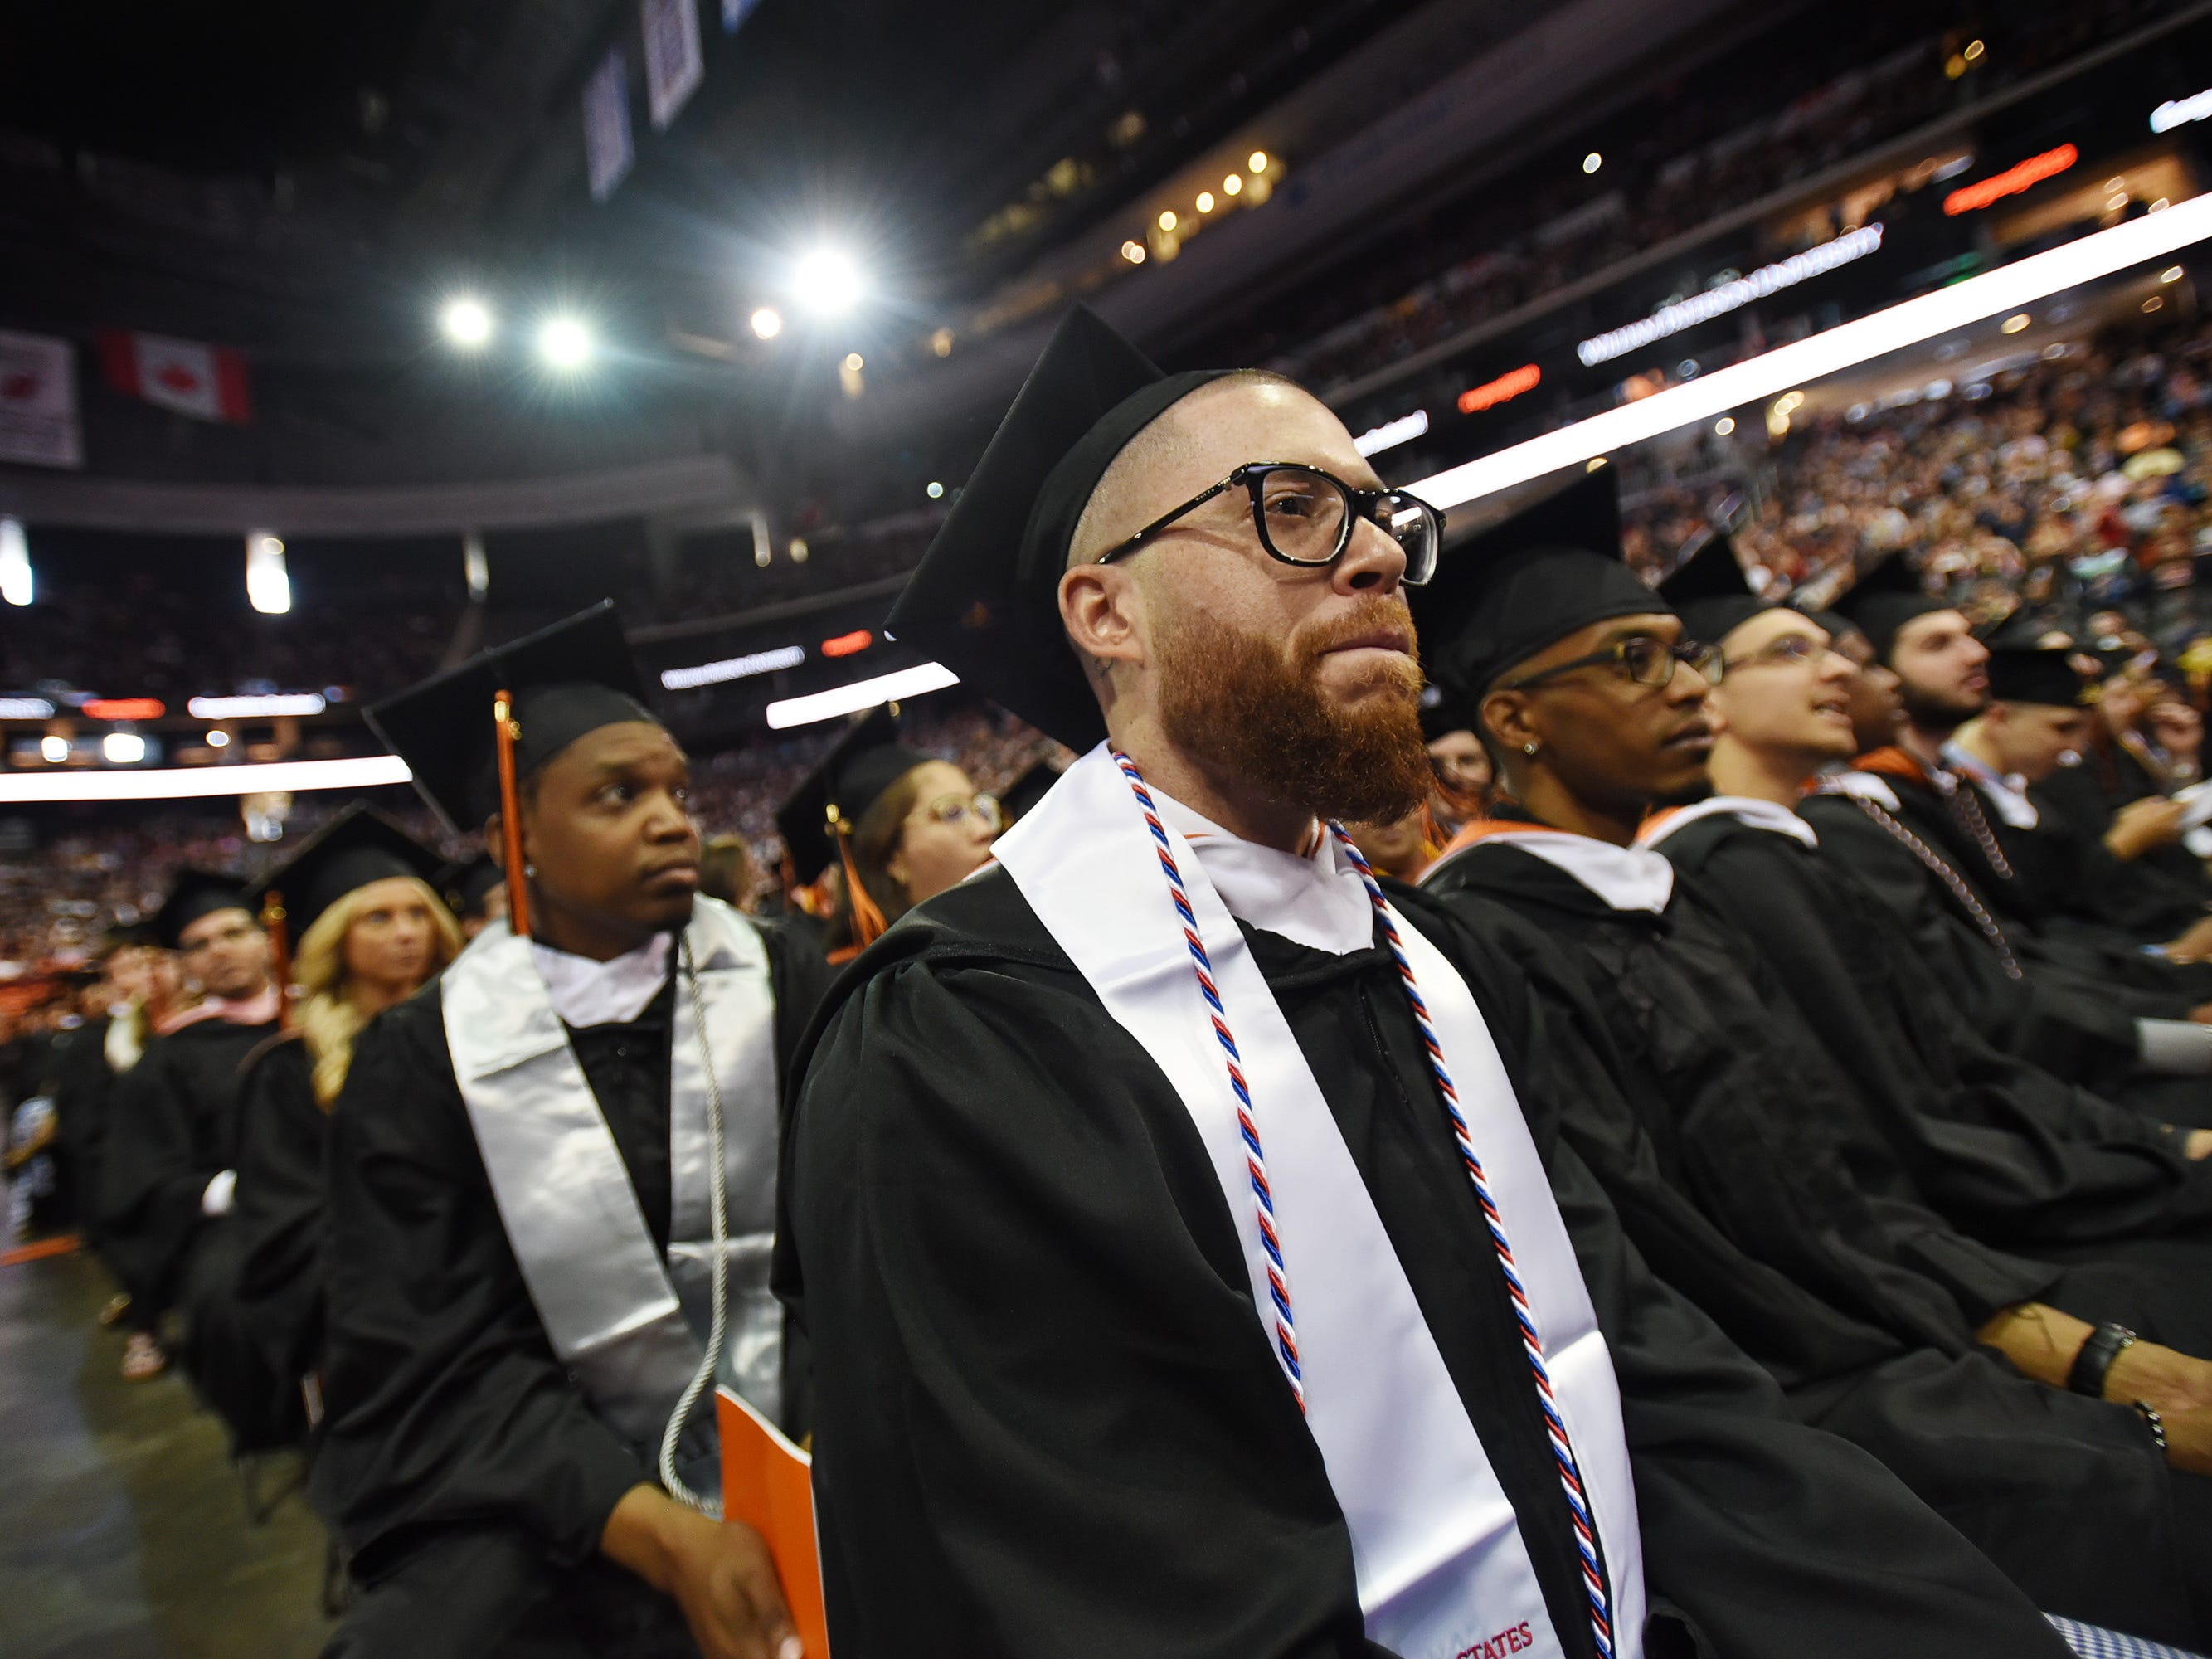 Jacob Martinez (age 36), of Weehawken, who Majored in Broadcast Journalism, an Army veteran and native of Puerto Rico, listens during the William Paterson University 2019 Commencement at the Prudential Center in Newark on 05/15/19.